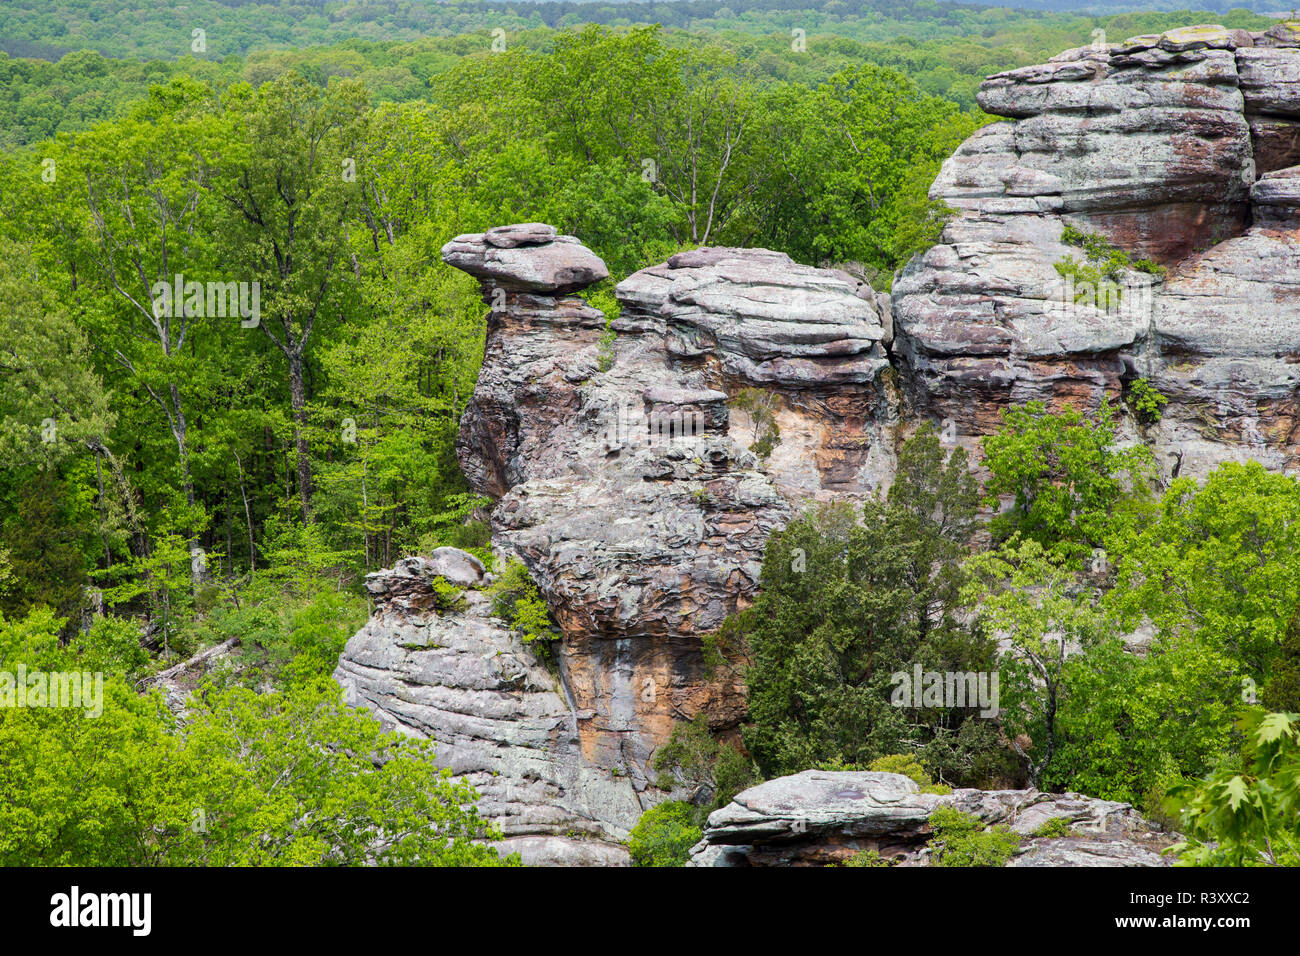 Camel Rock, Garden of the Gods Recreation Area, Shawnee National Forest, Saline County, Illinois - Stock Image